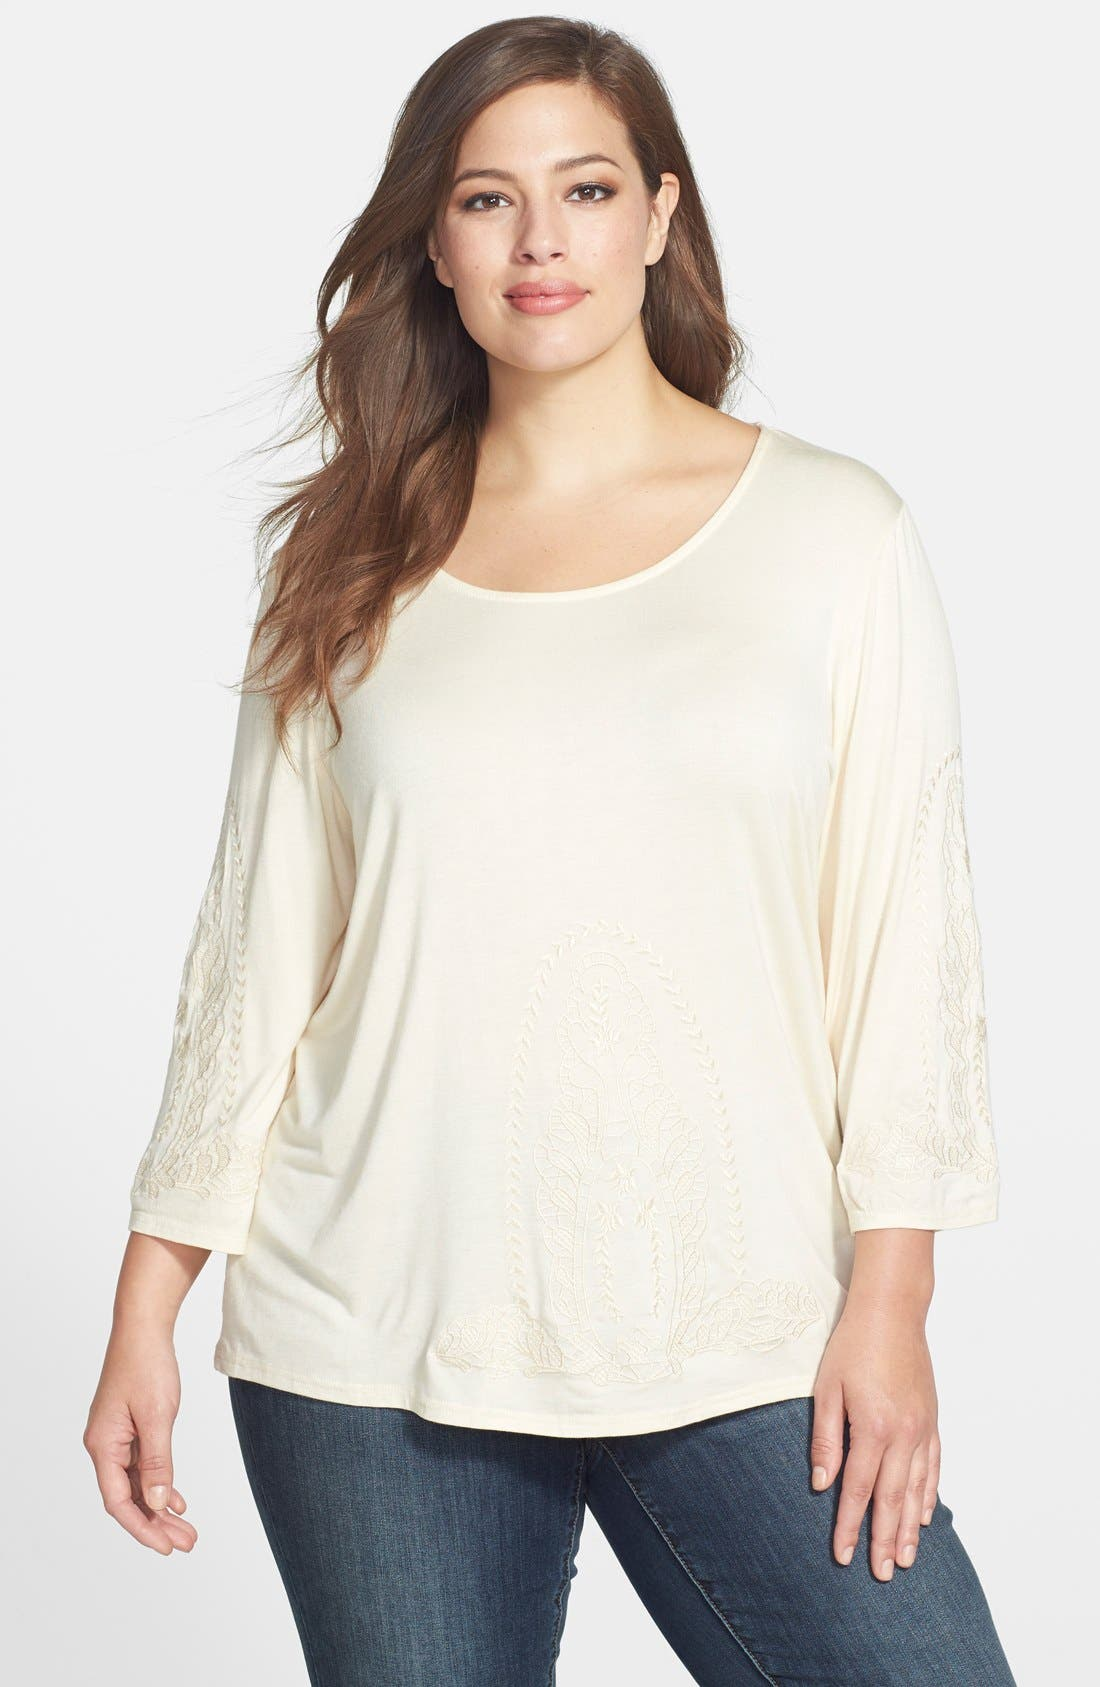 Alternate Image 1 Selected - Forgotten Grace Embroidered Knit Top (Plus Size)